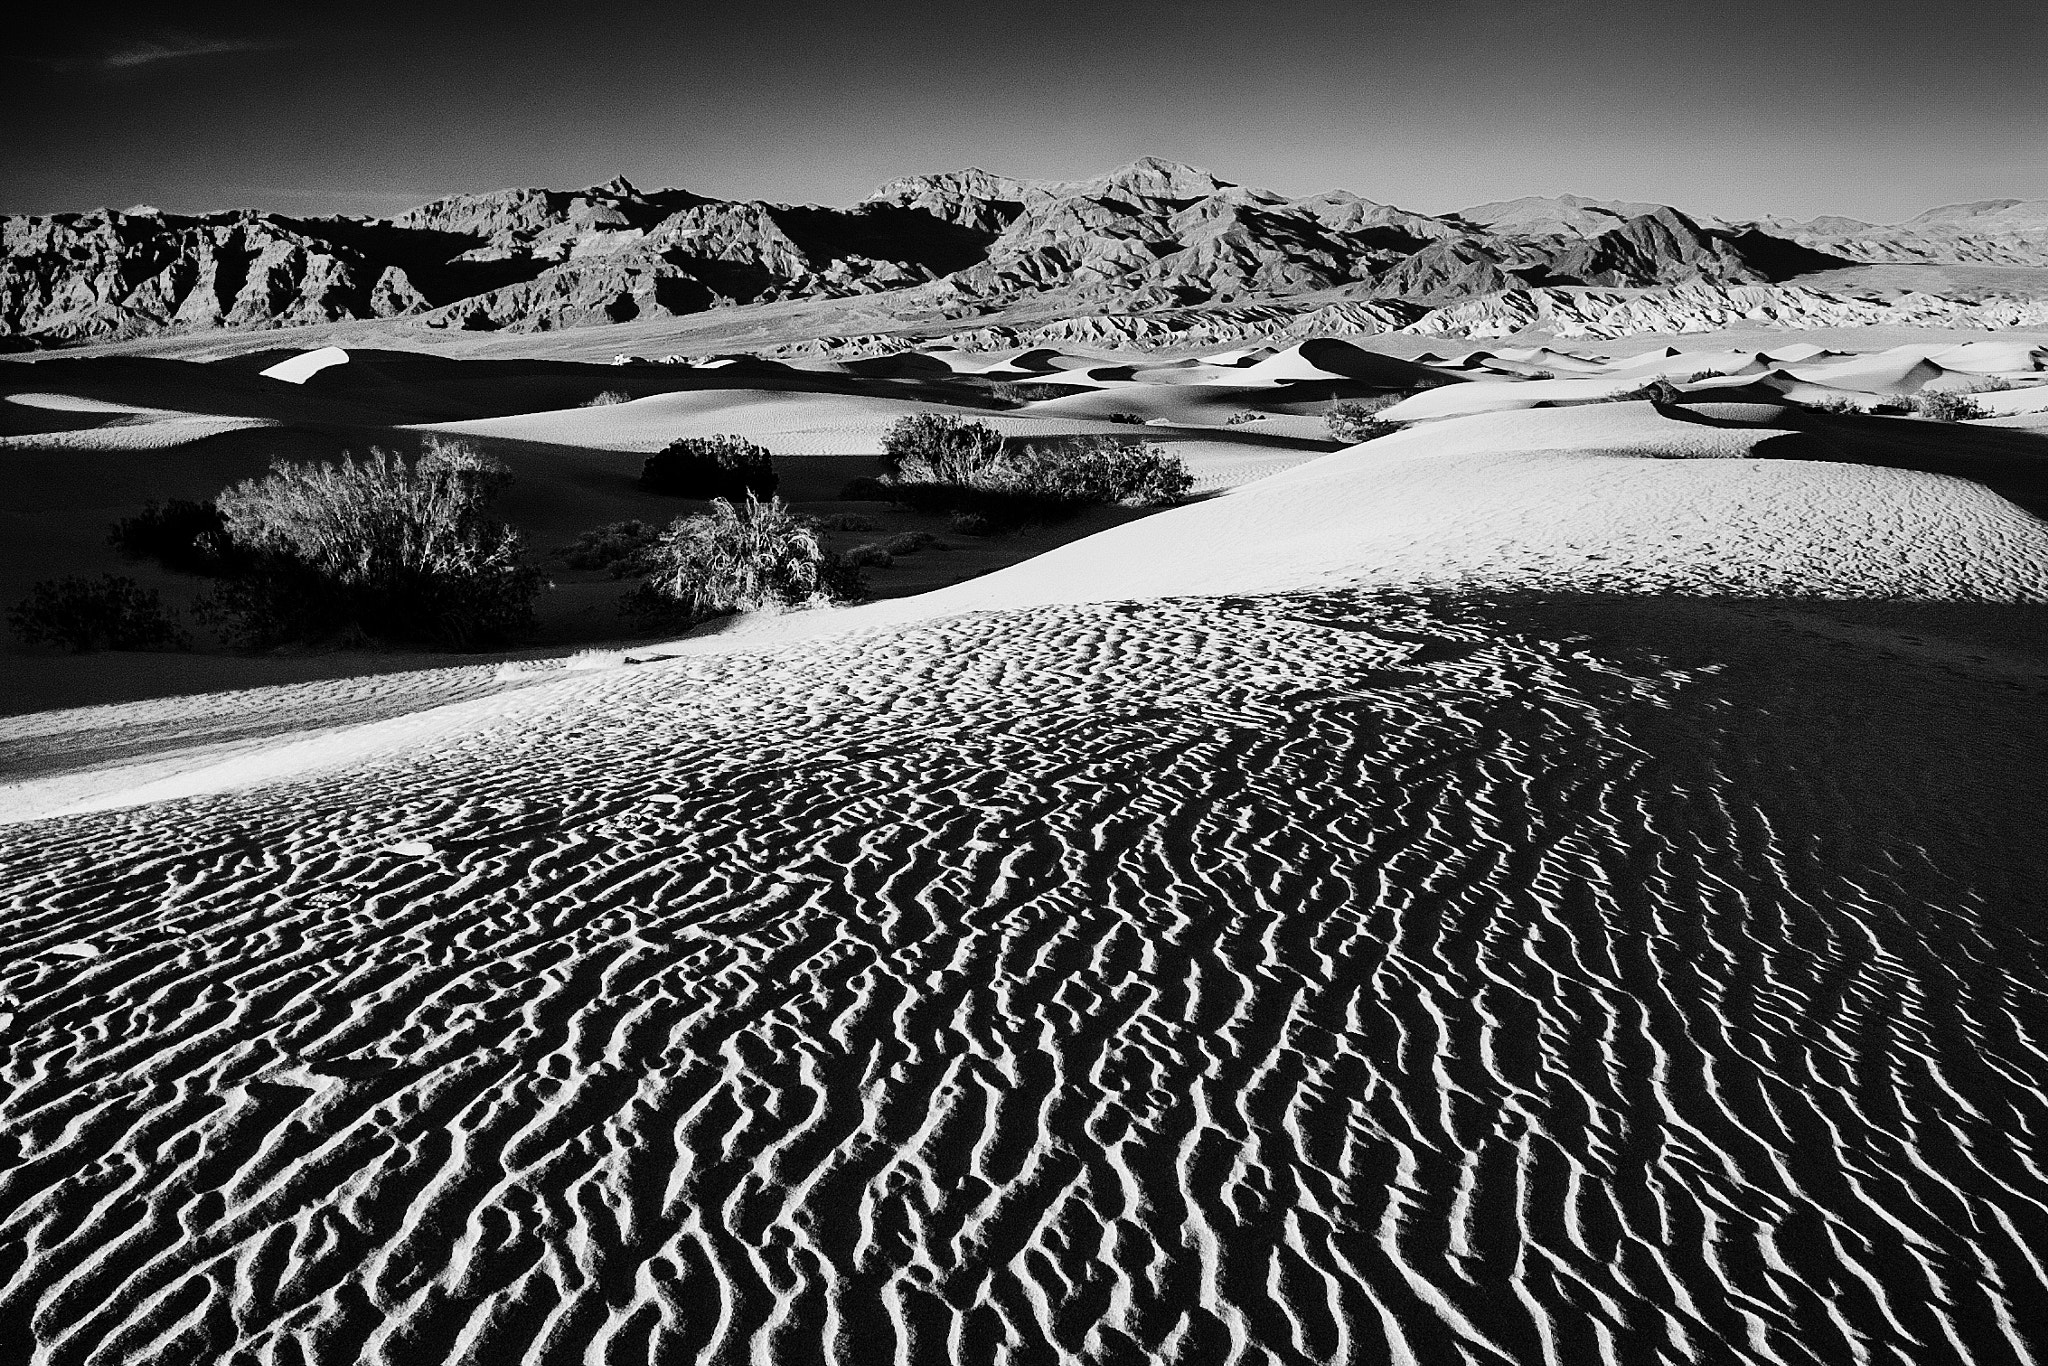 Photograph Death Valley #2 by Chaluntorn Preeyasombat on 500px